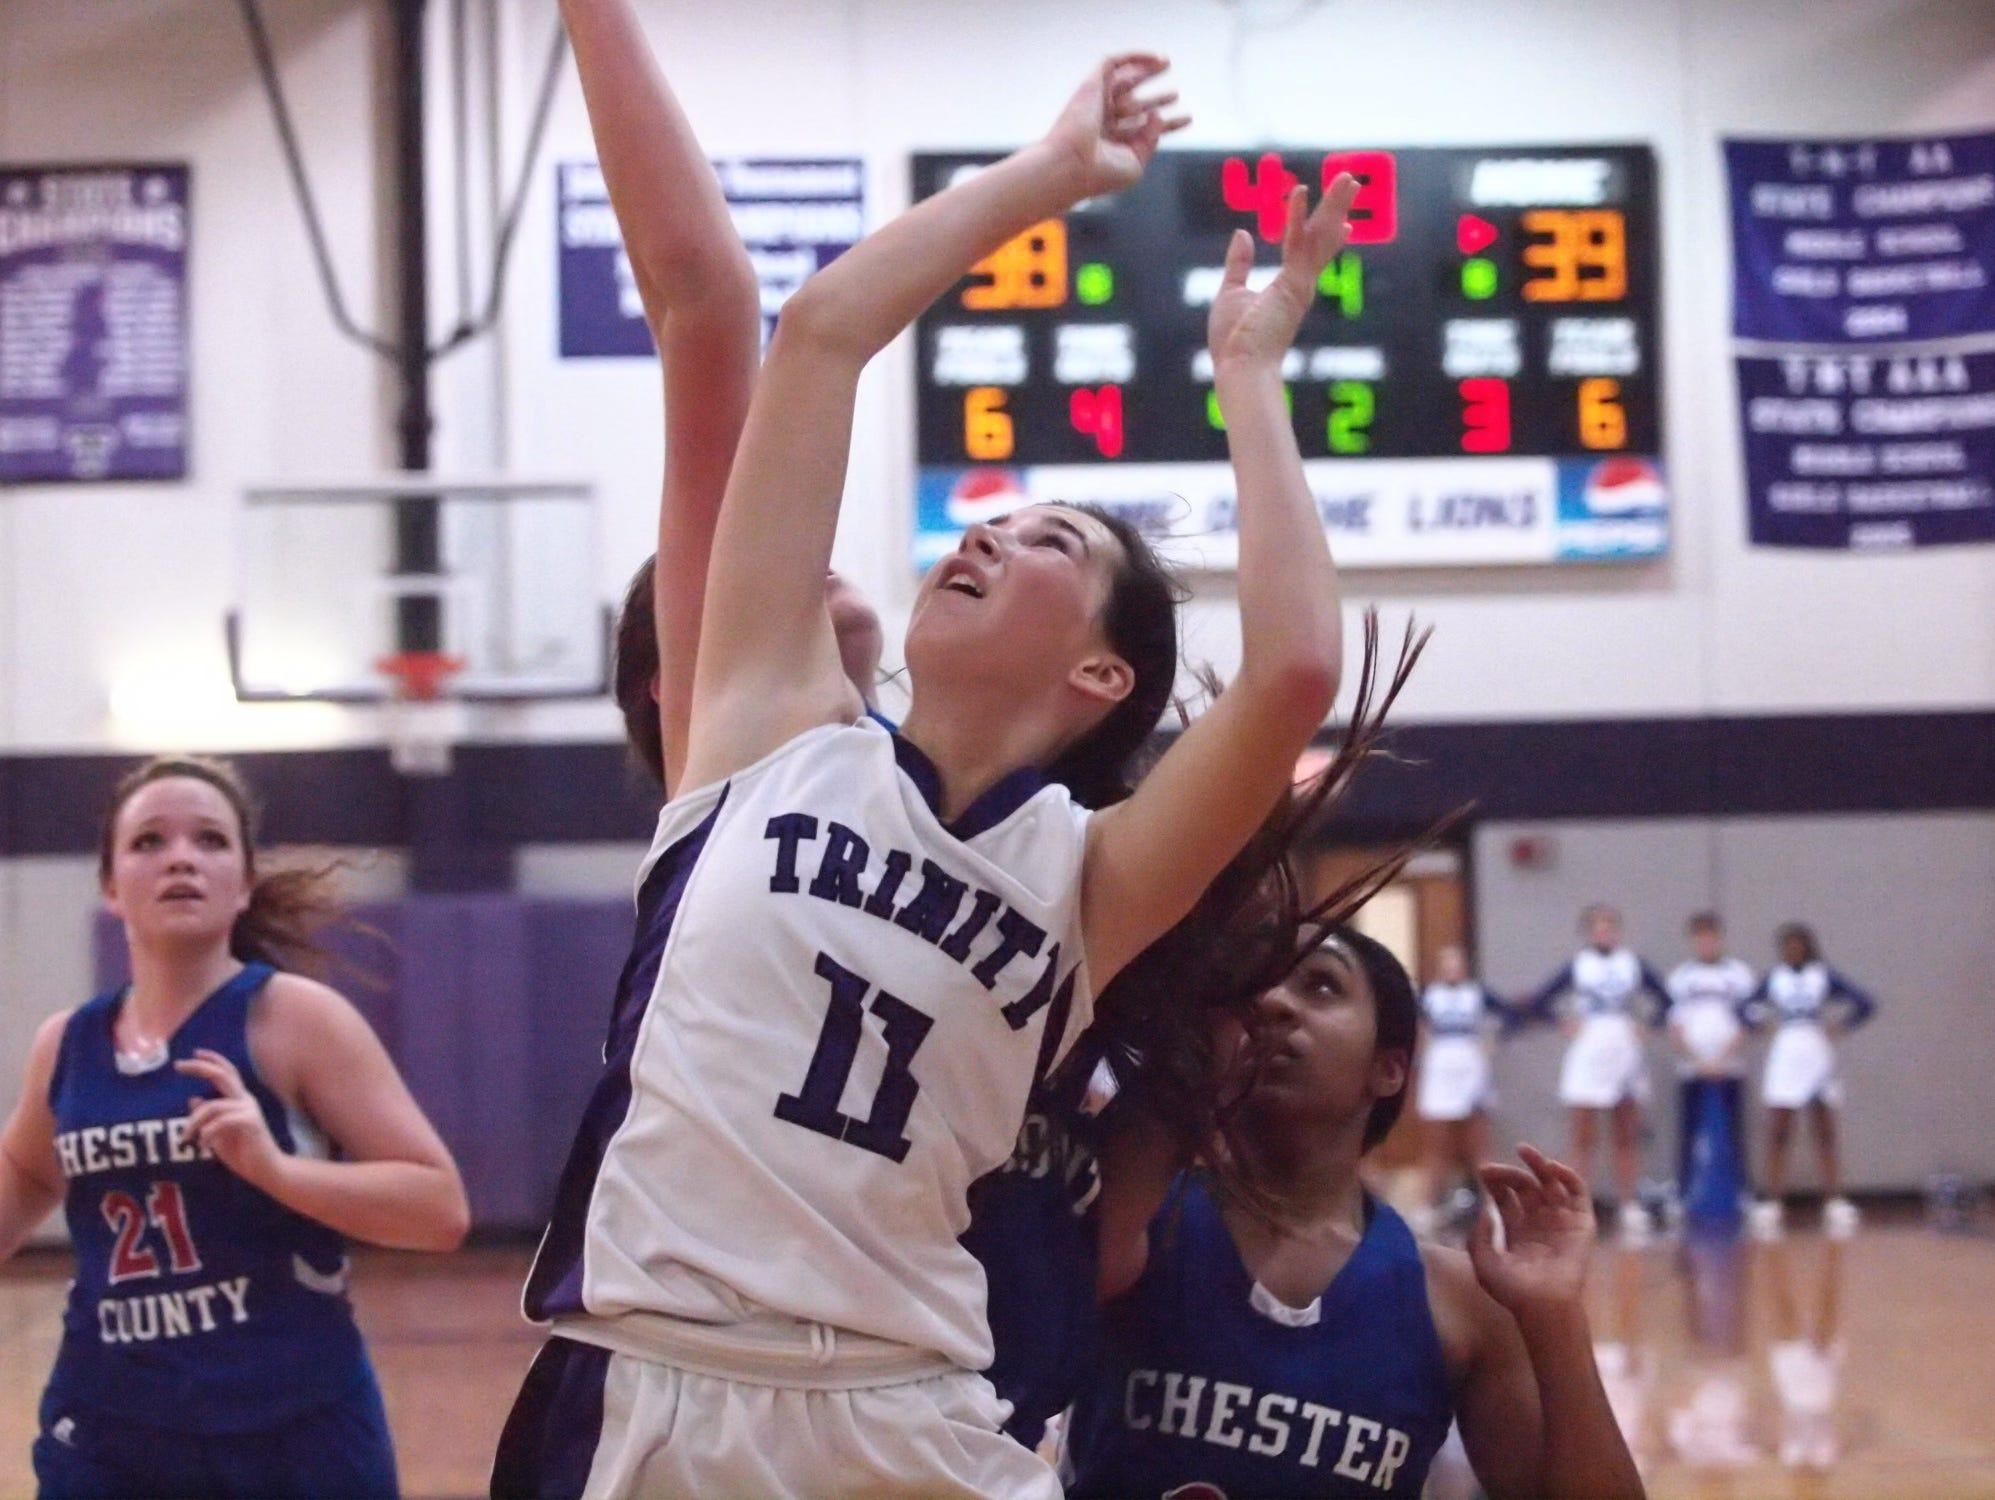 Brynne Lytle is Trinity Christian Academy's all-time leading girls' basketball scorer.